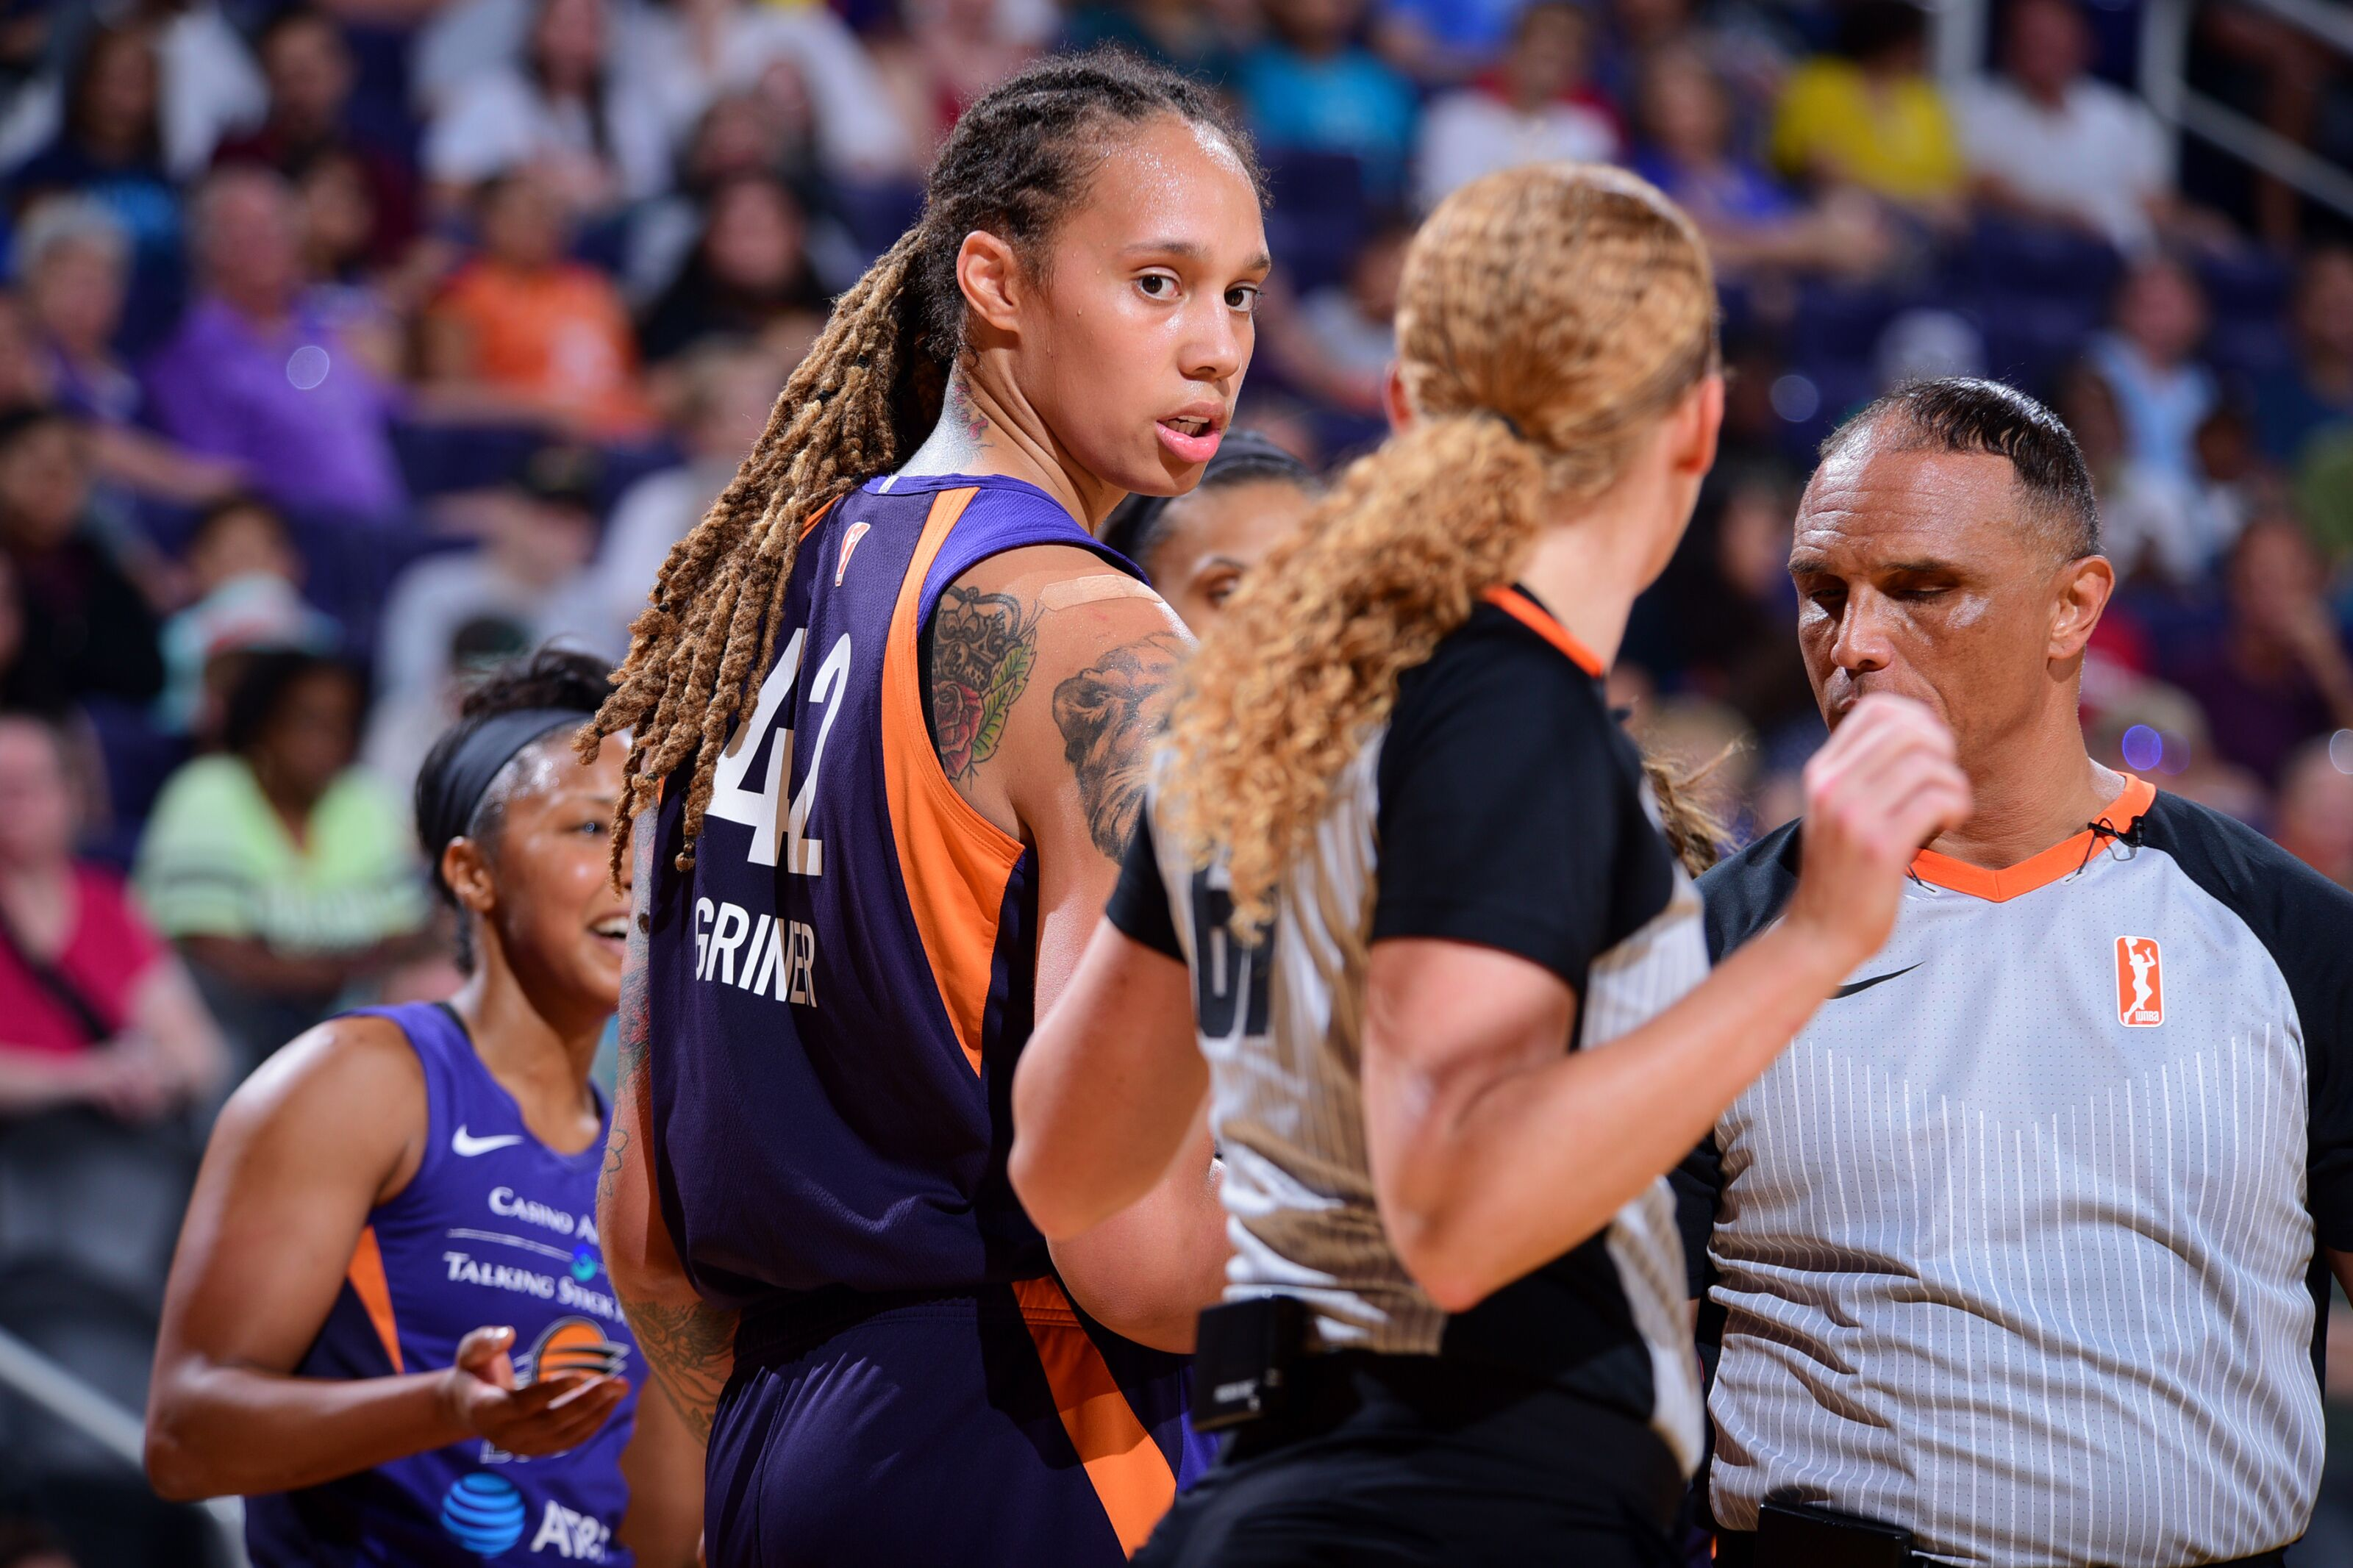 'It's not consistent across the board': Brittney Griner responds to her three-game suspension